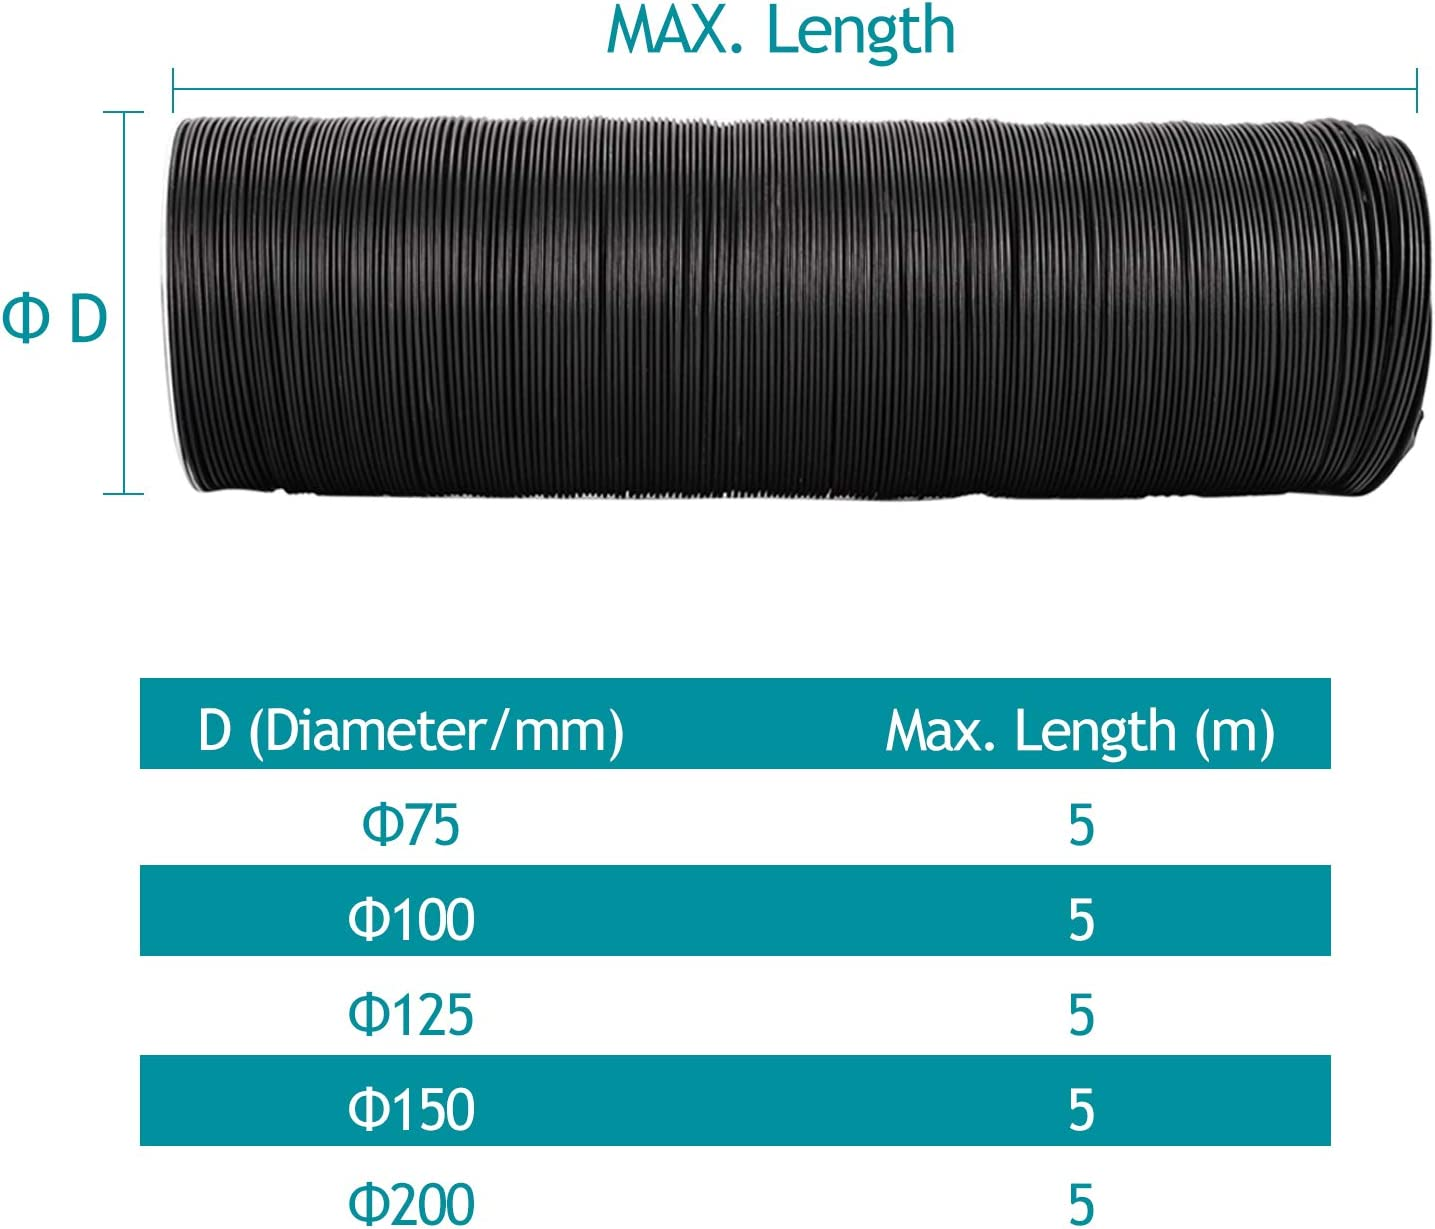 HG POWER 16.5 Foot Duct Silencer Flexible Ducting Hose Noise Reducer Hose Silencer for Inline Duct Fan 3 inch, Black